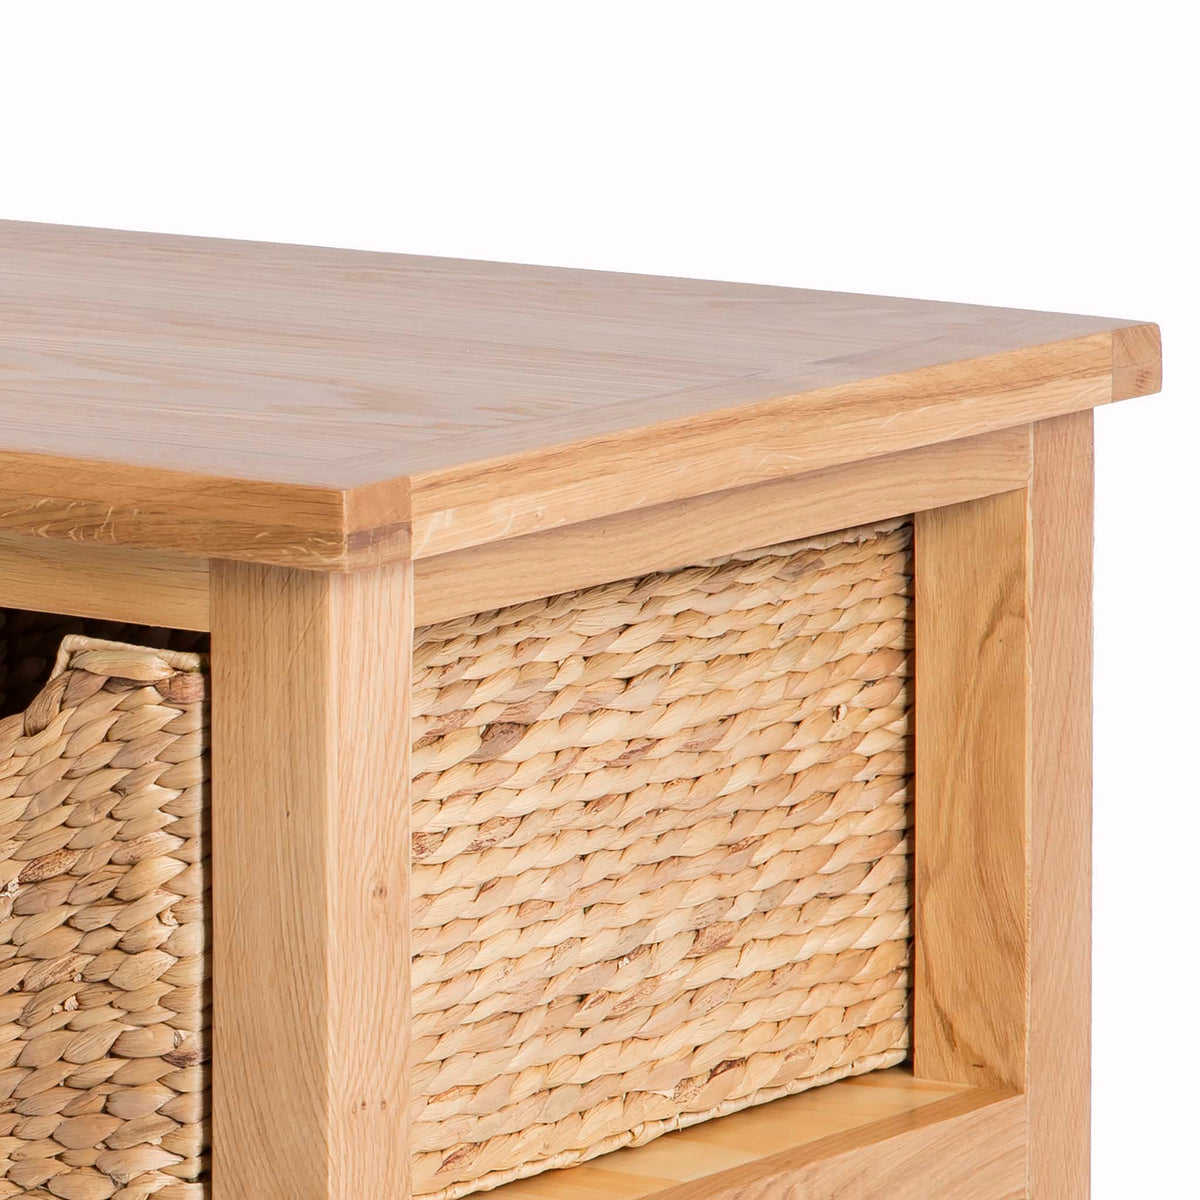 London Oak Coffee Table with Baskets by Roseland Furniture - Close up of side of table